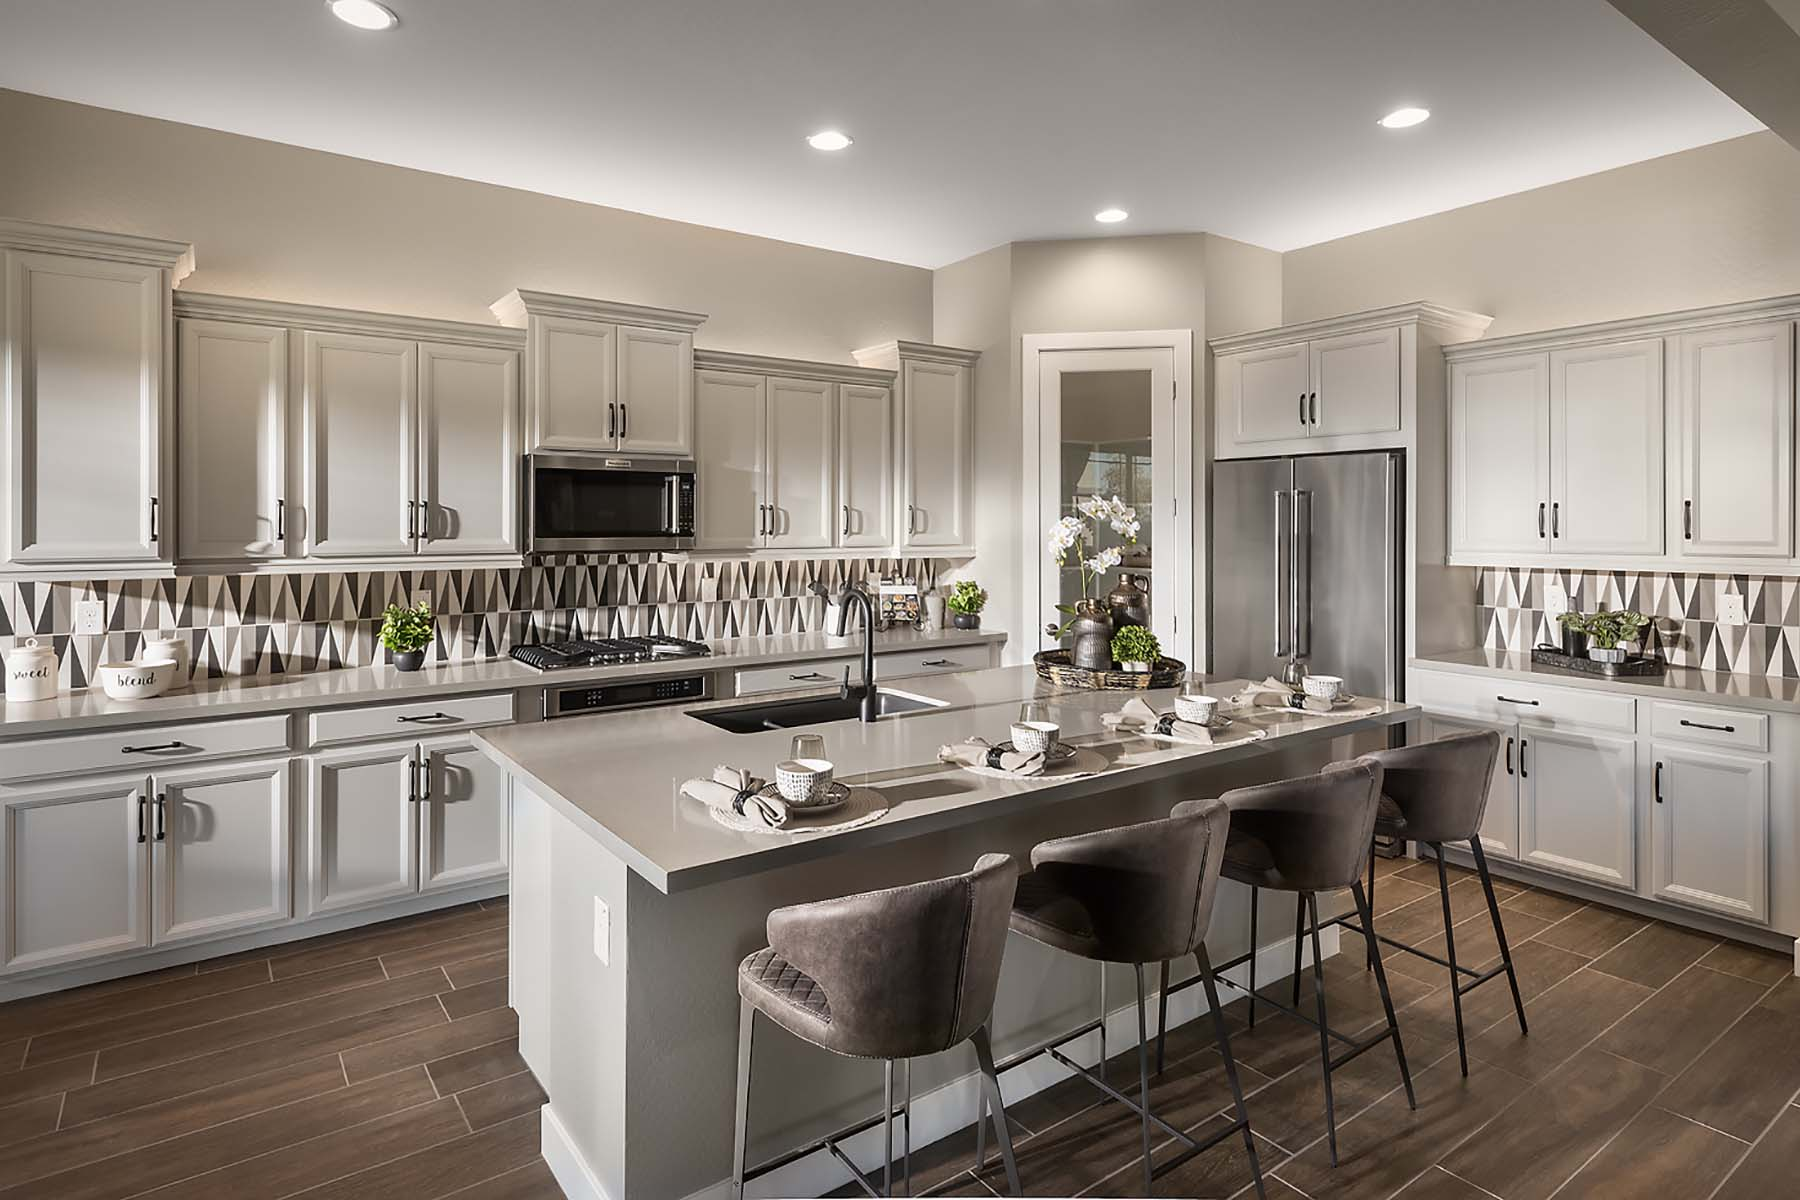 Bellwood Plan Kitchen at Vista Diamante at Camelback Ranch in Phoenix Arizona by Mattamy Homes